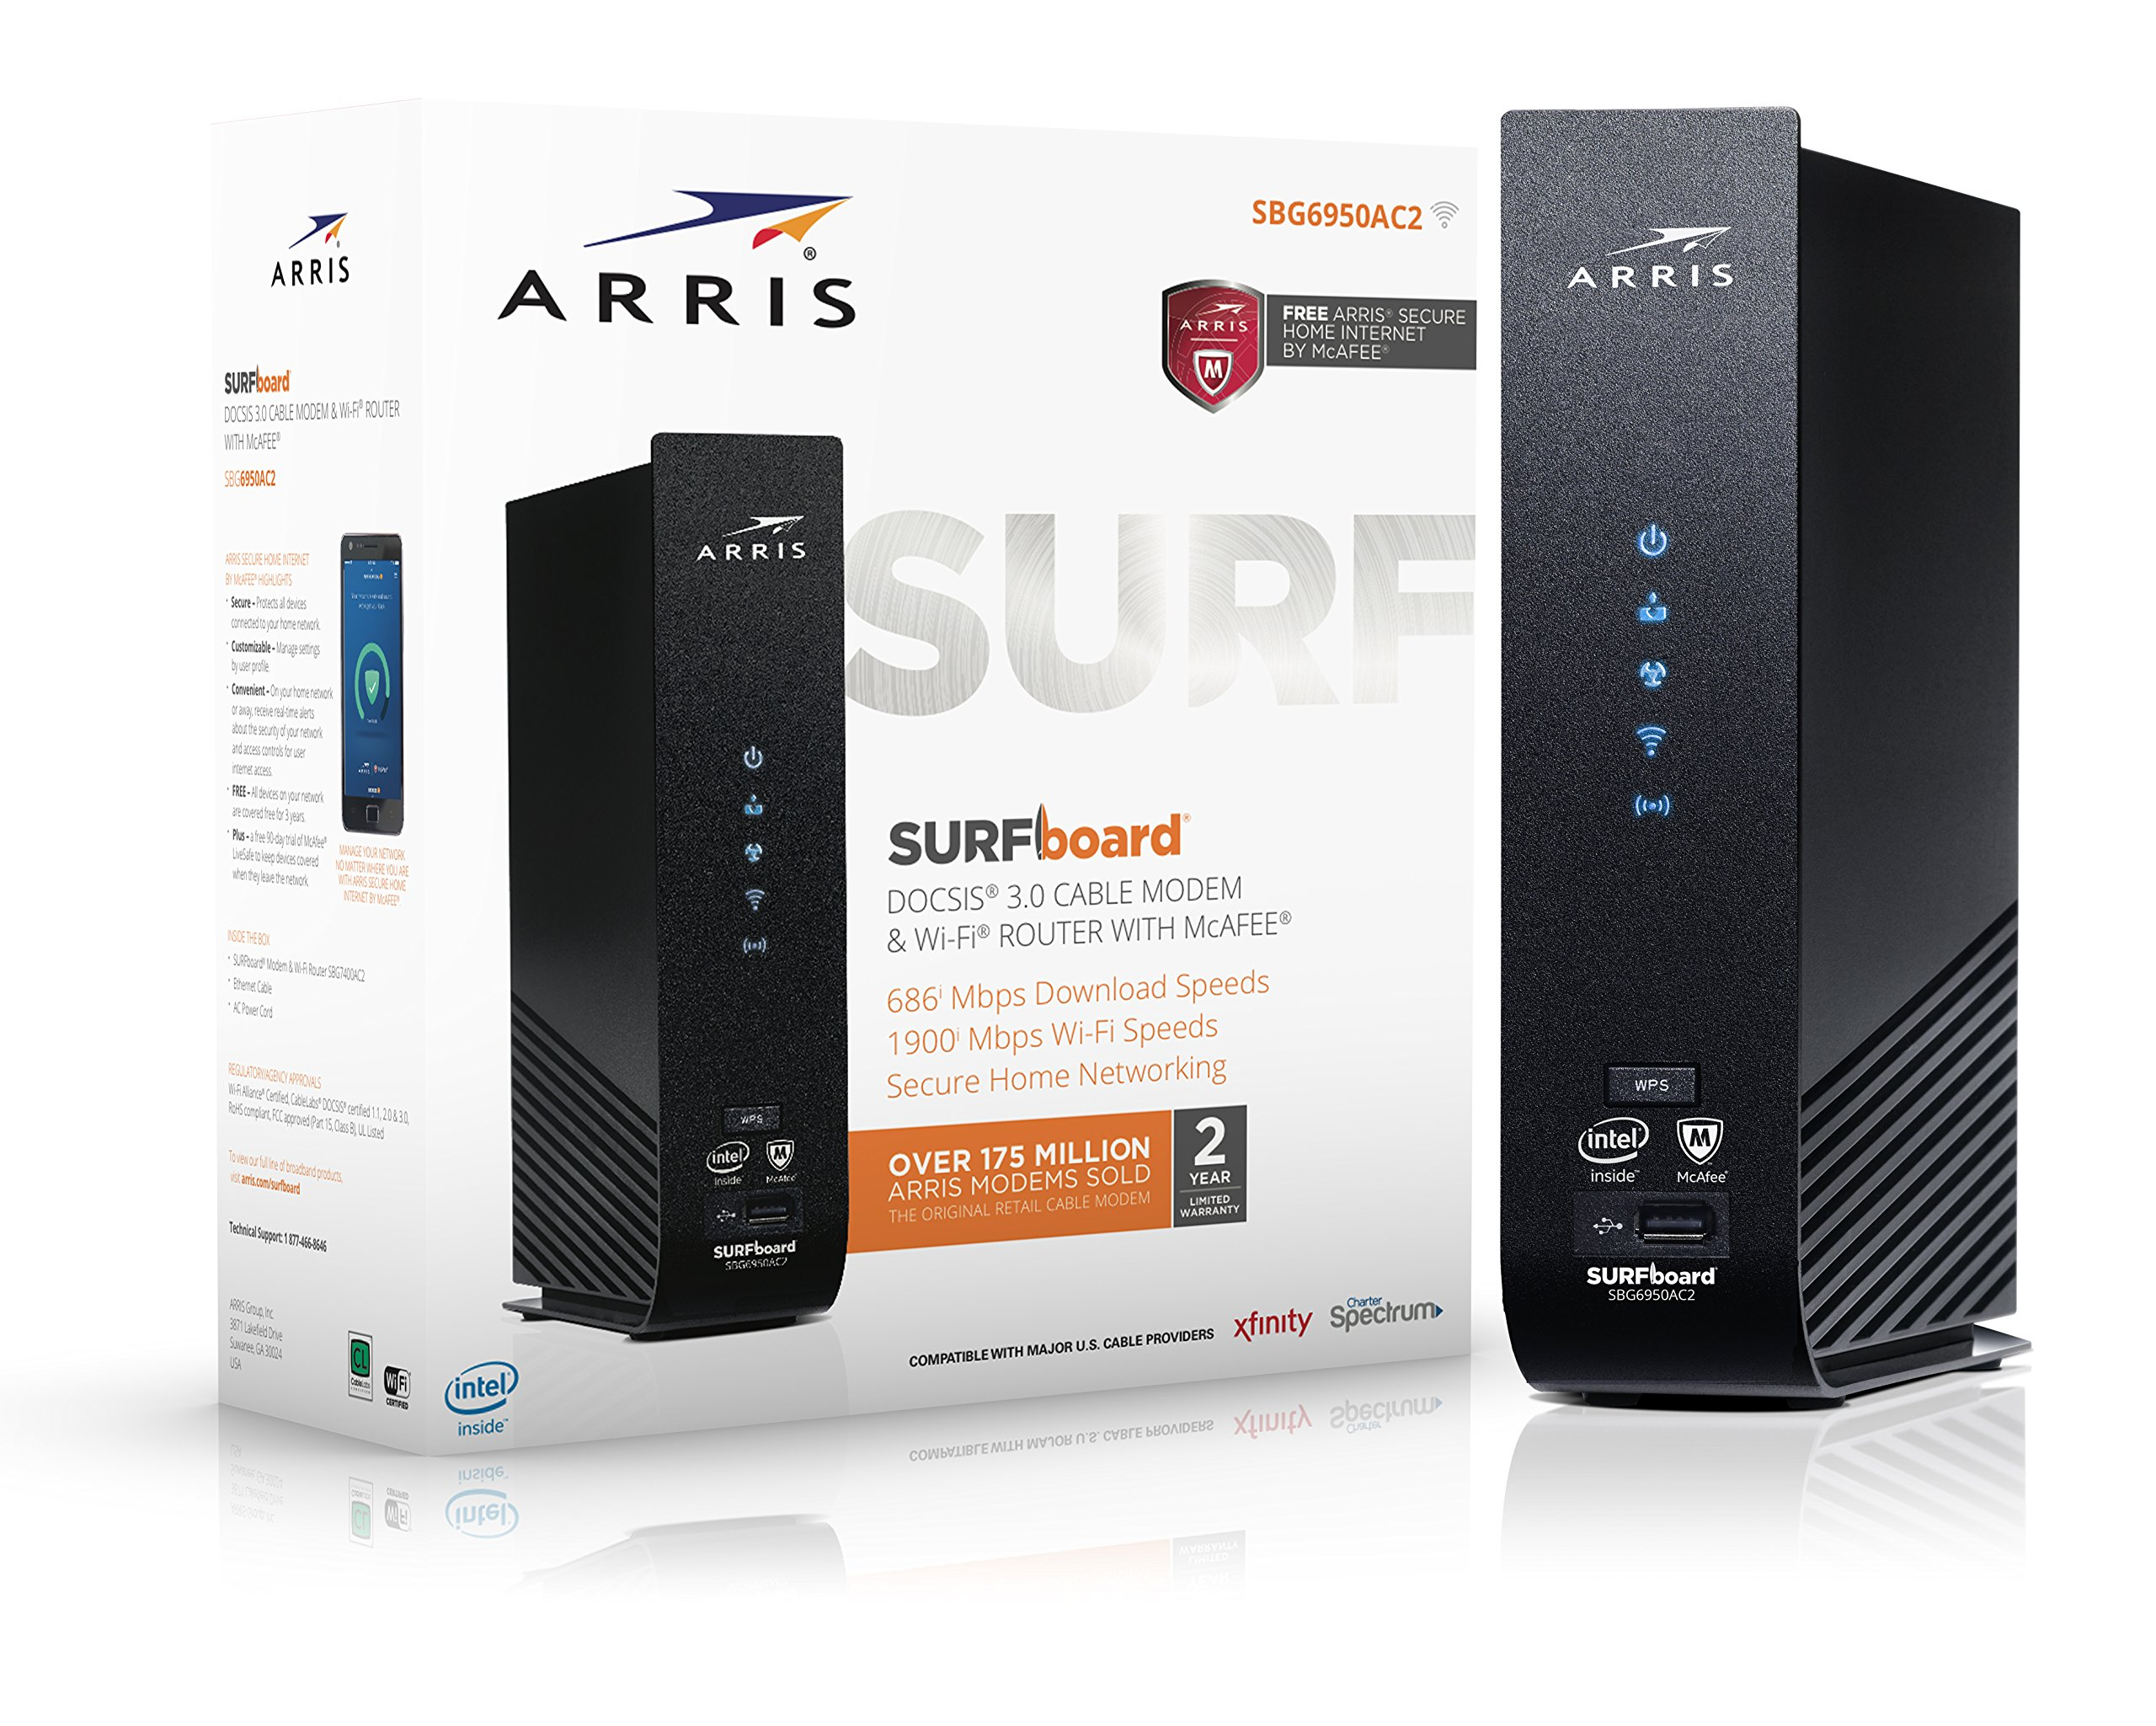 ARRIS SURFboard SBG6950AC2 16x4 DOCSIS 3.0 Cable Modem / AC1900 Wi-Fi Router / McAfee Whole Home Internet Protection- Black